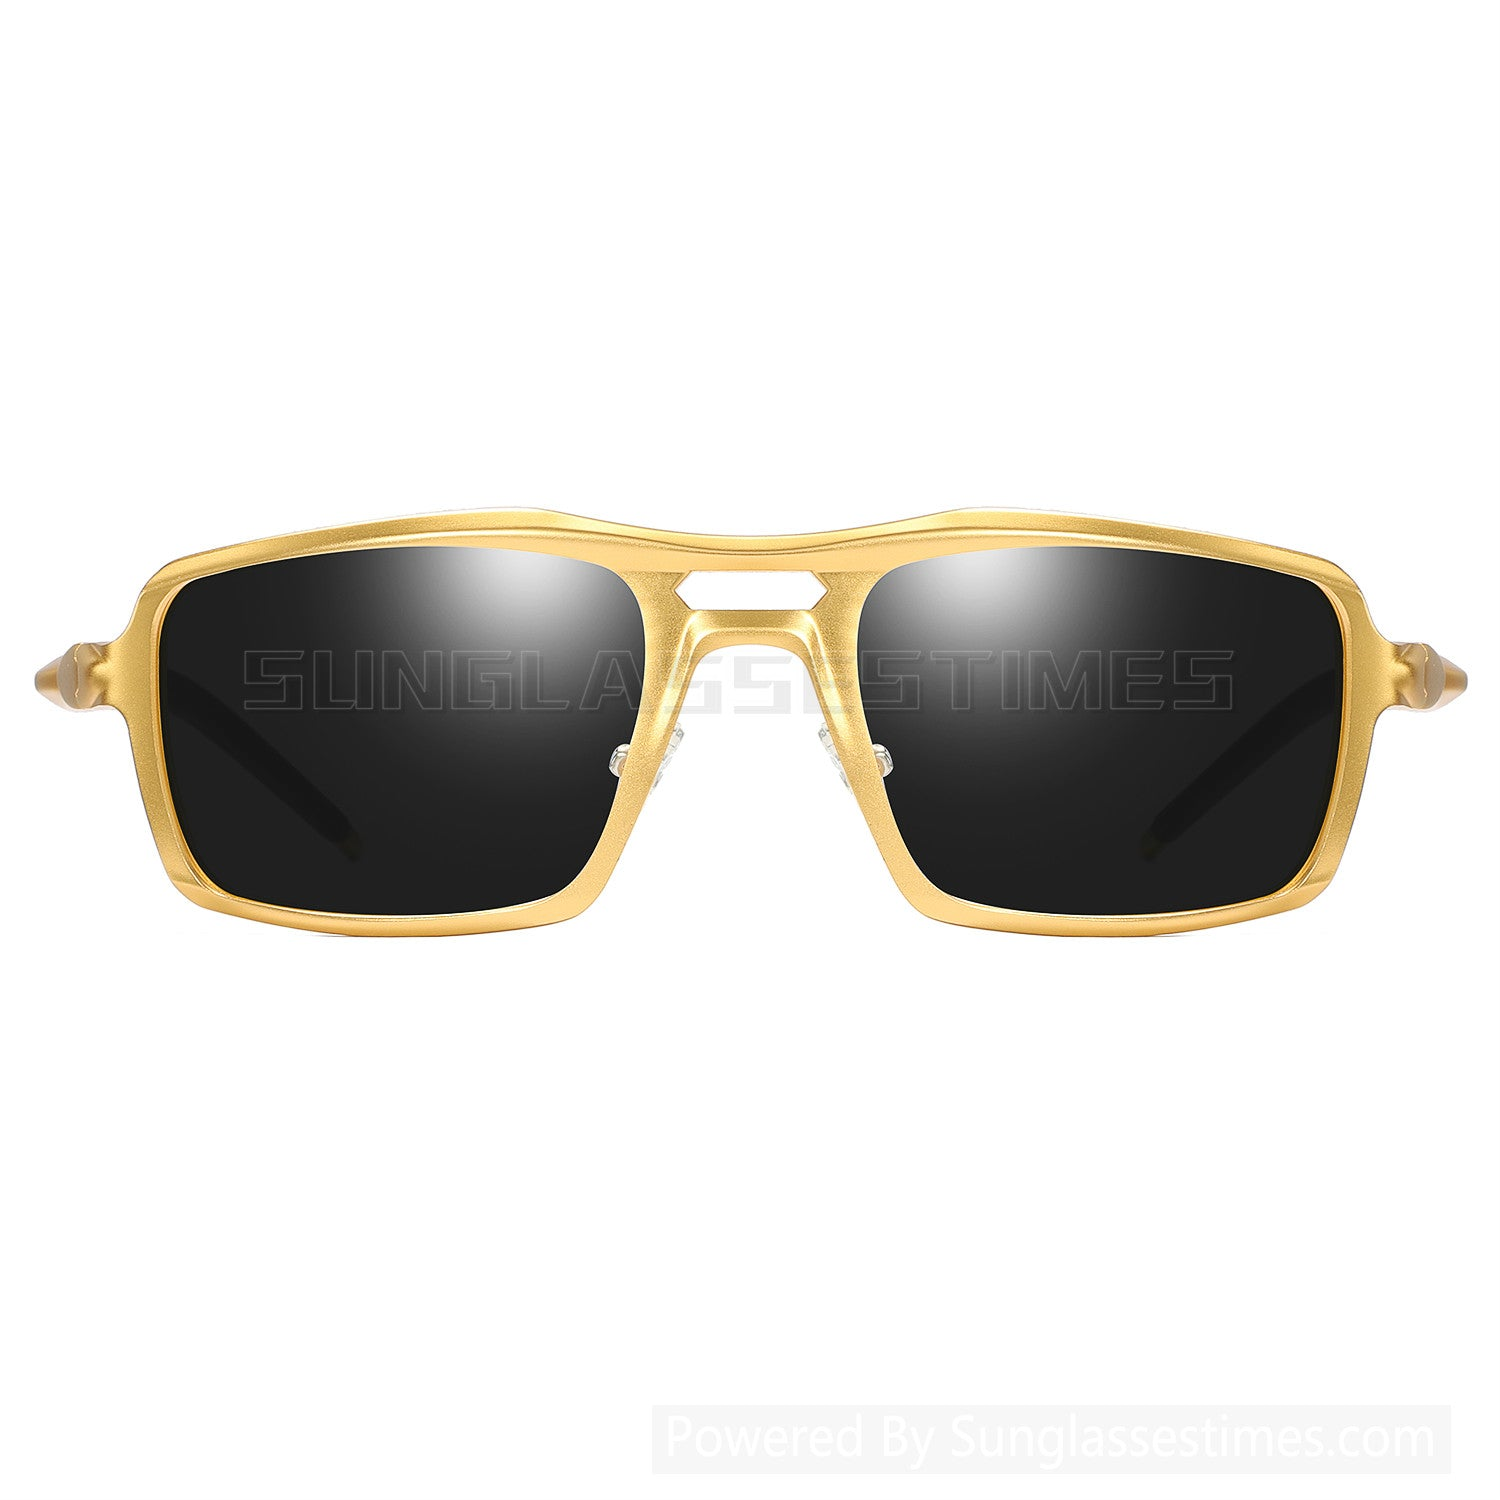 Branded Designed Polarized Sunglasses Mg Al